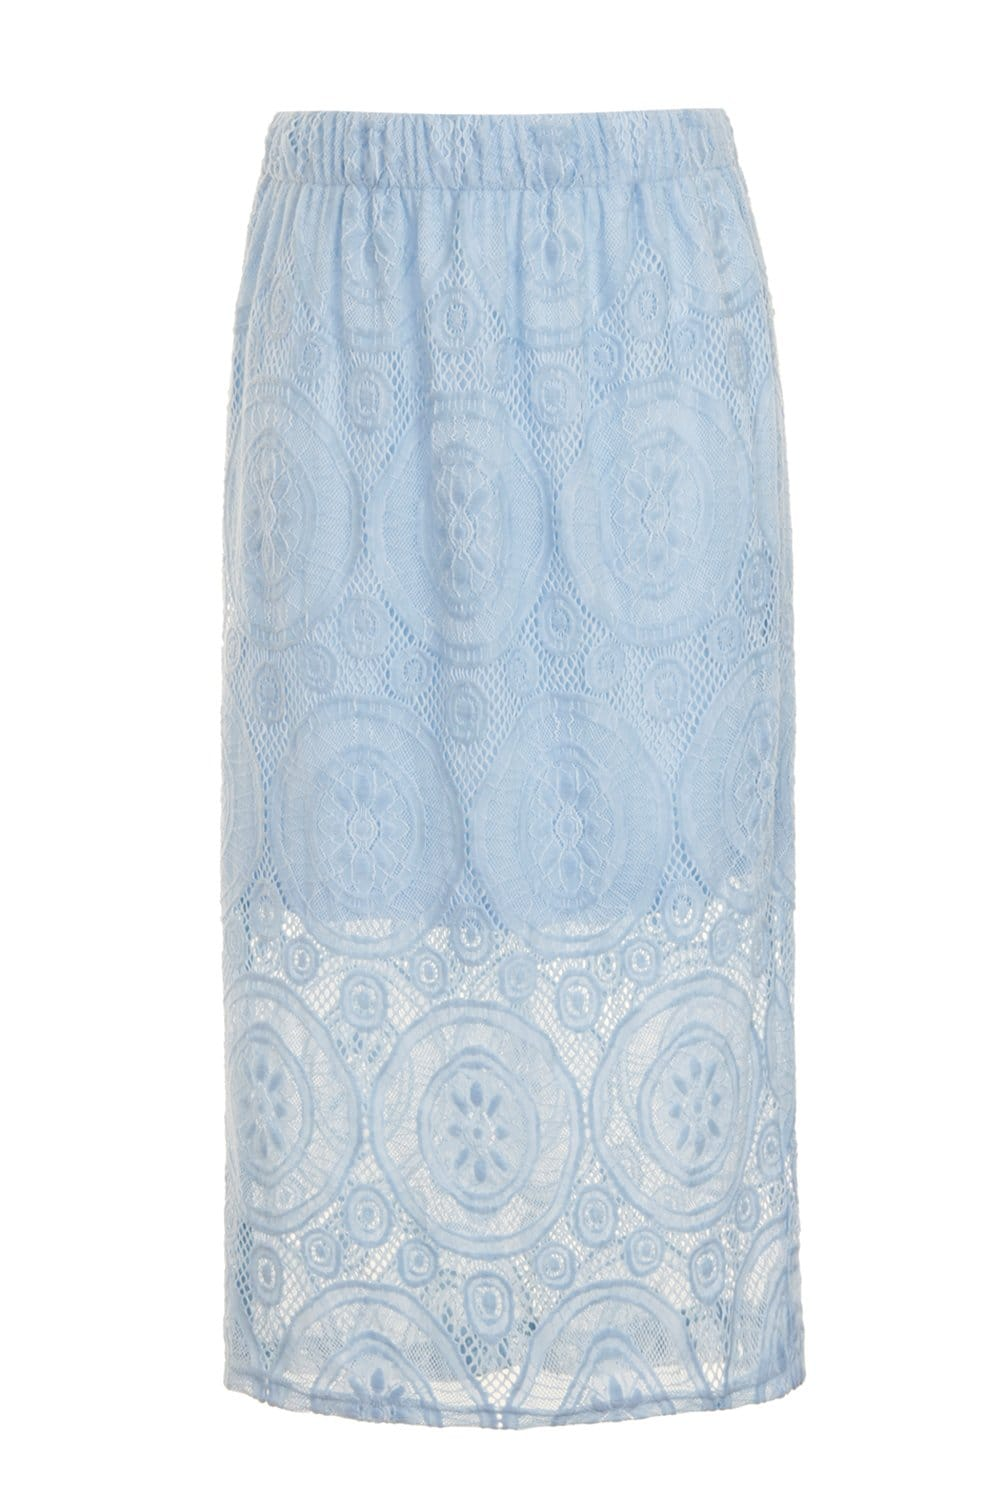 outlet on baby blue lace overlay midi skirt